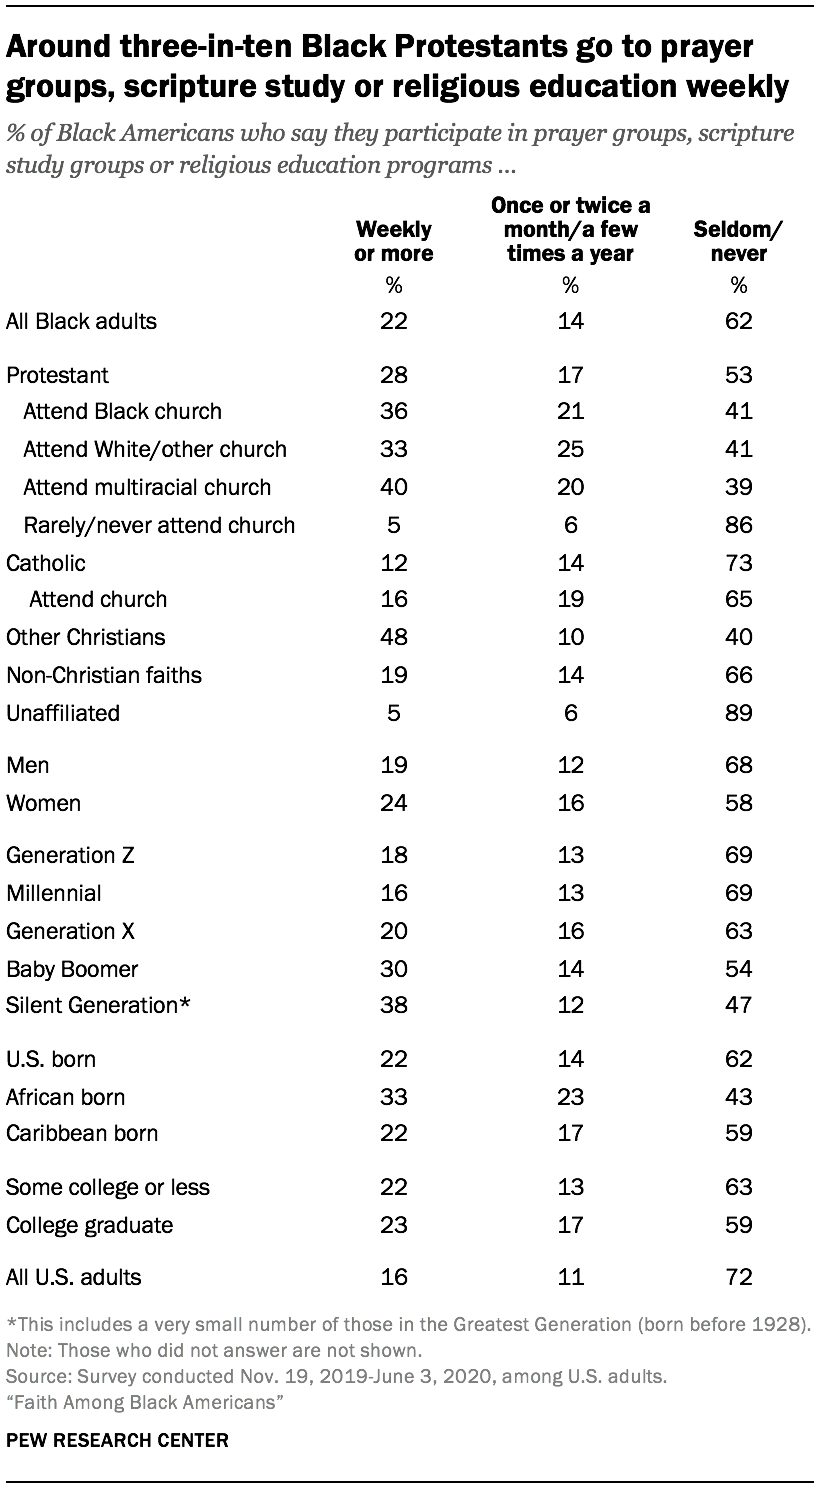 Around three-in-ten Black Protestants go to prayer groups, scripture study or religious education weekly